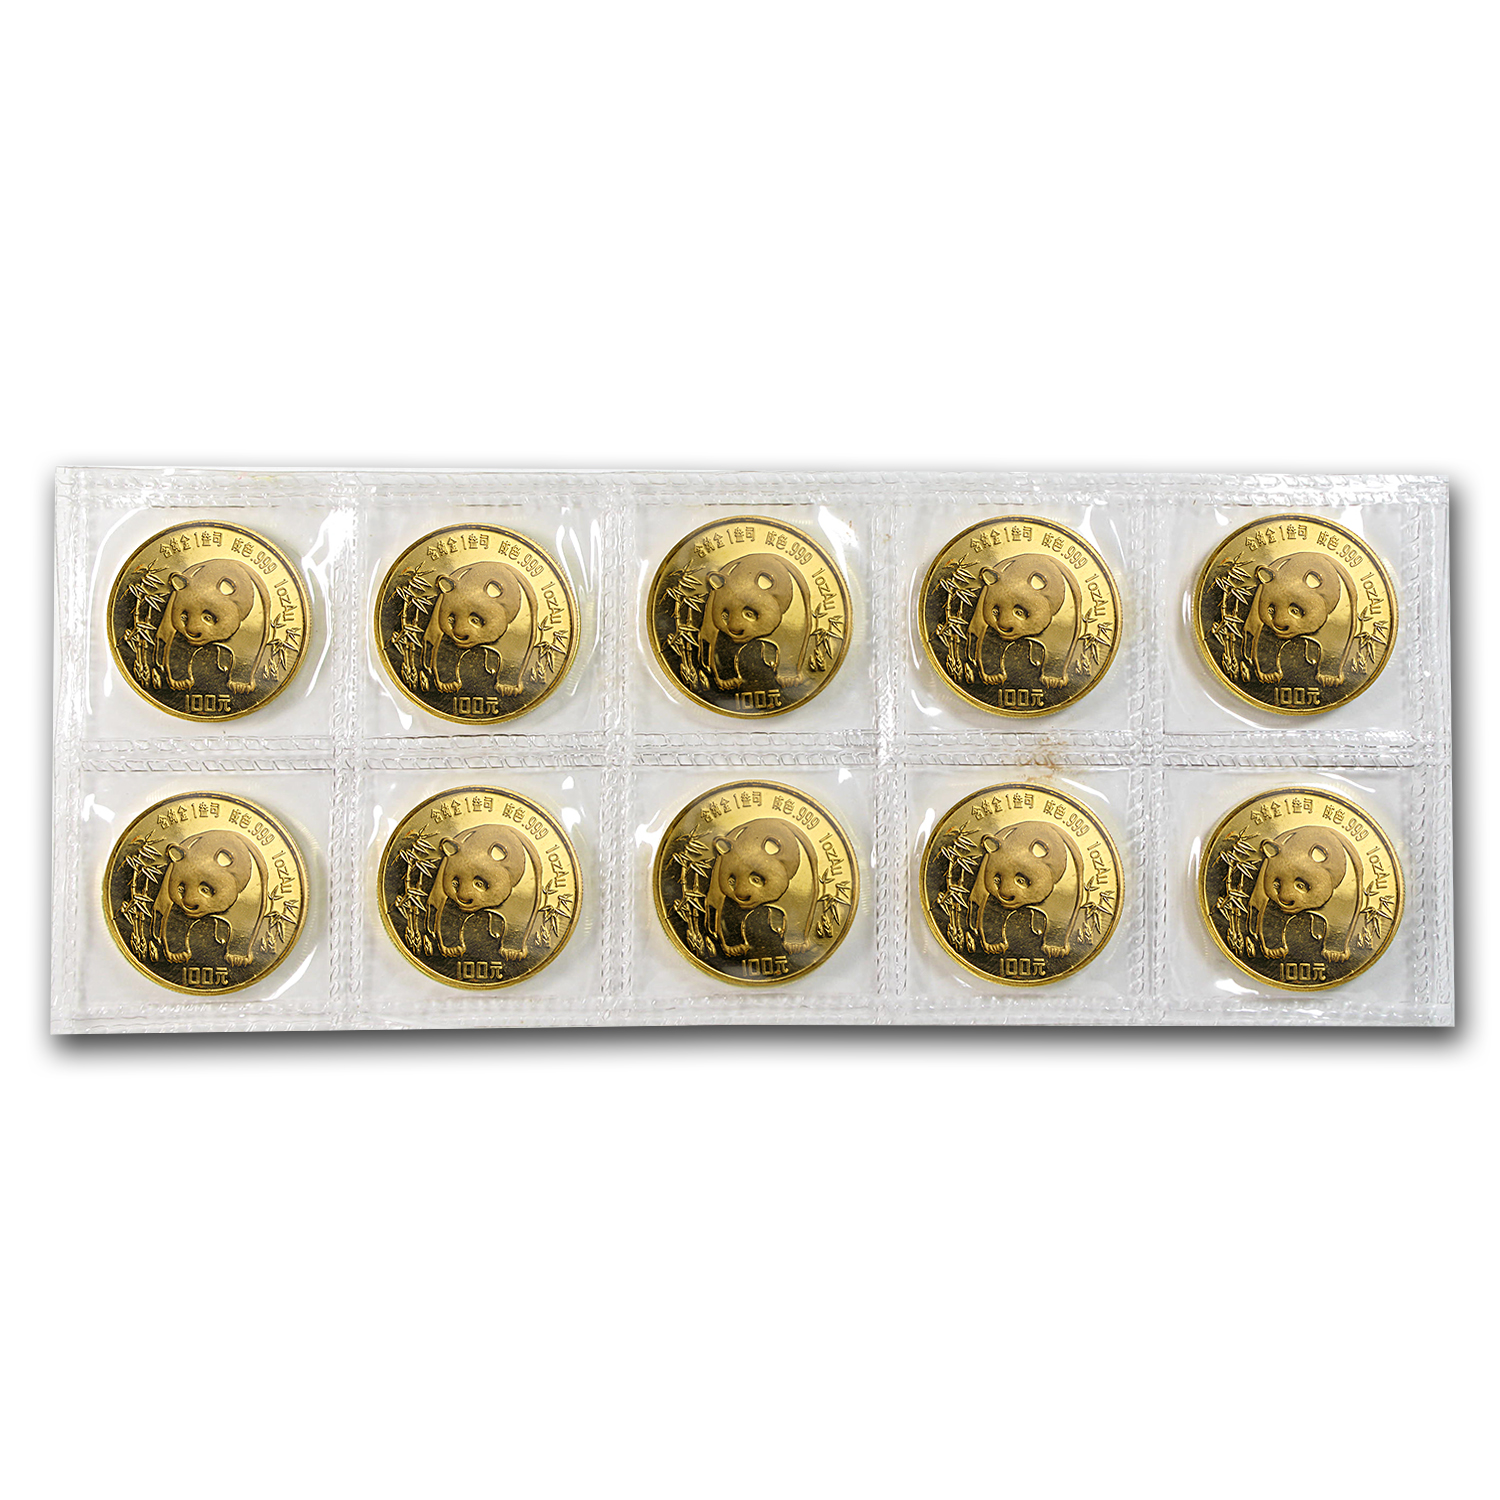 1986 China 1 oz Gold Panda BU (Sealed Sheet of 10)